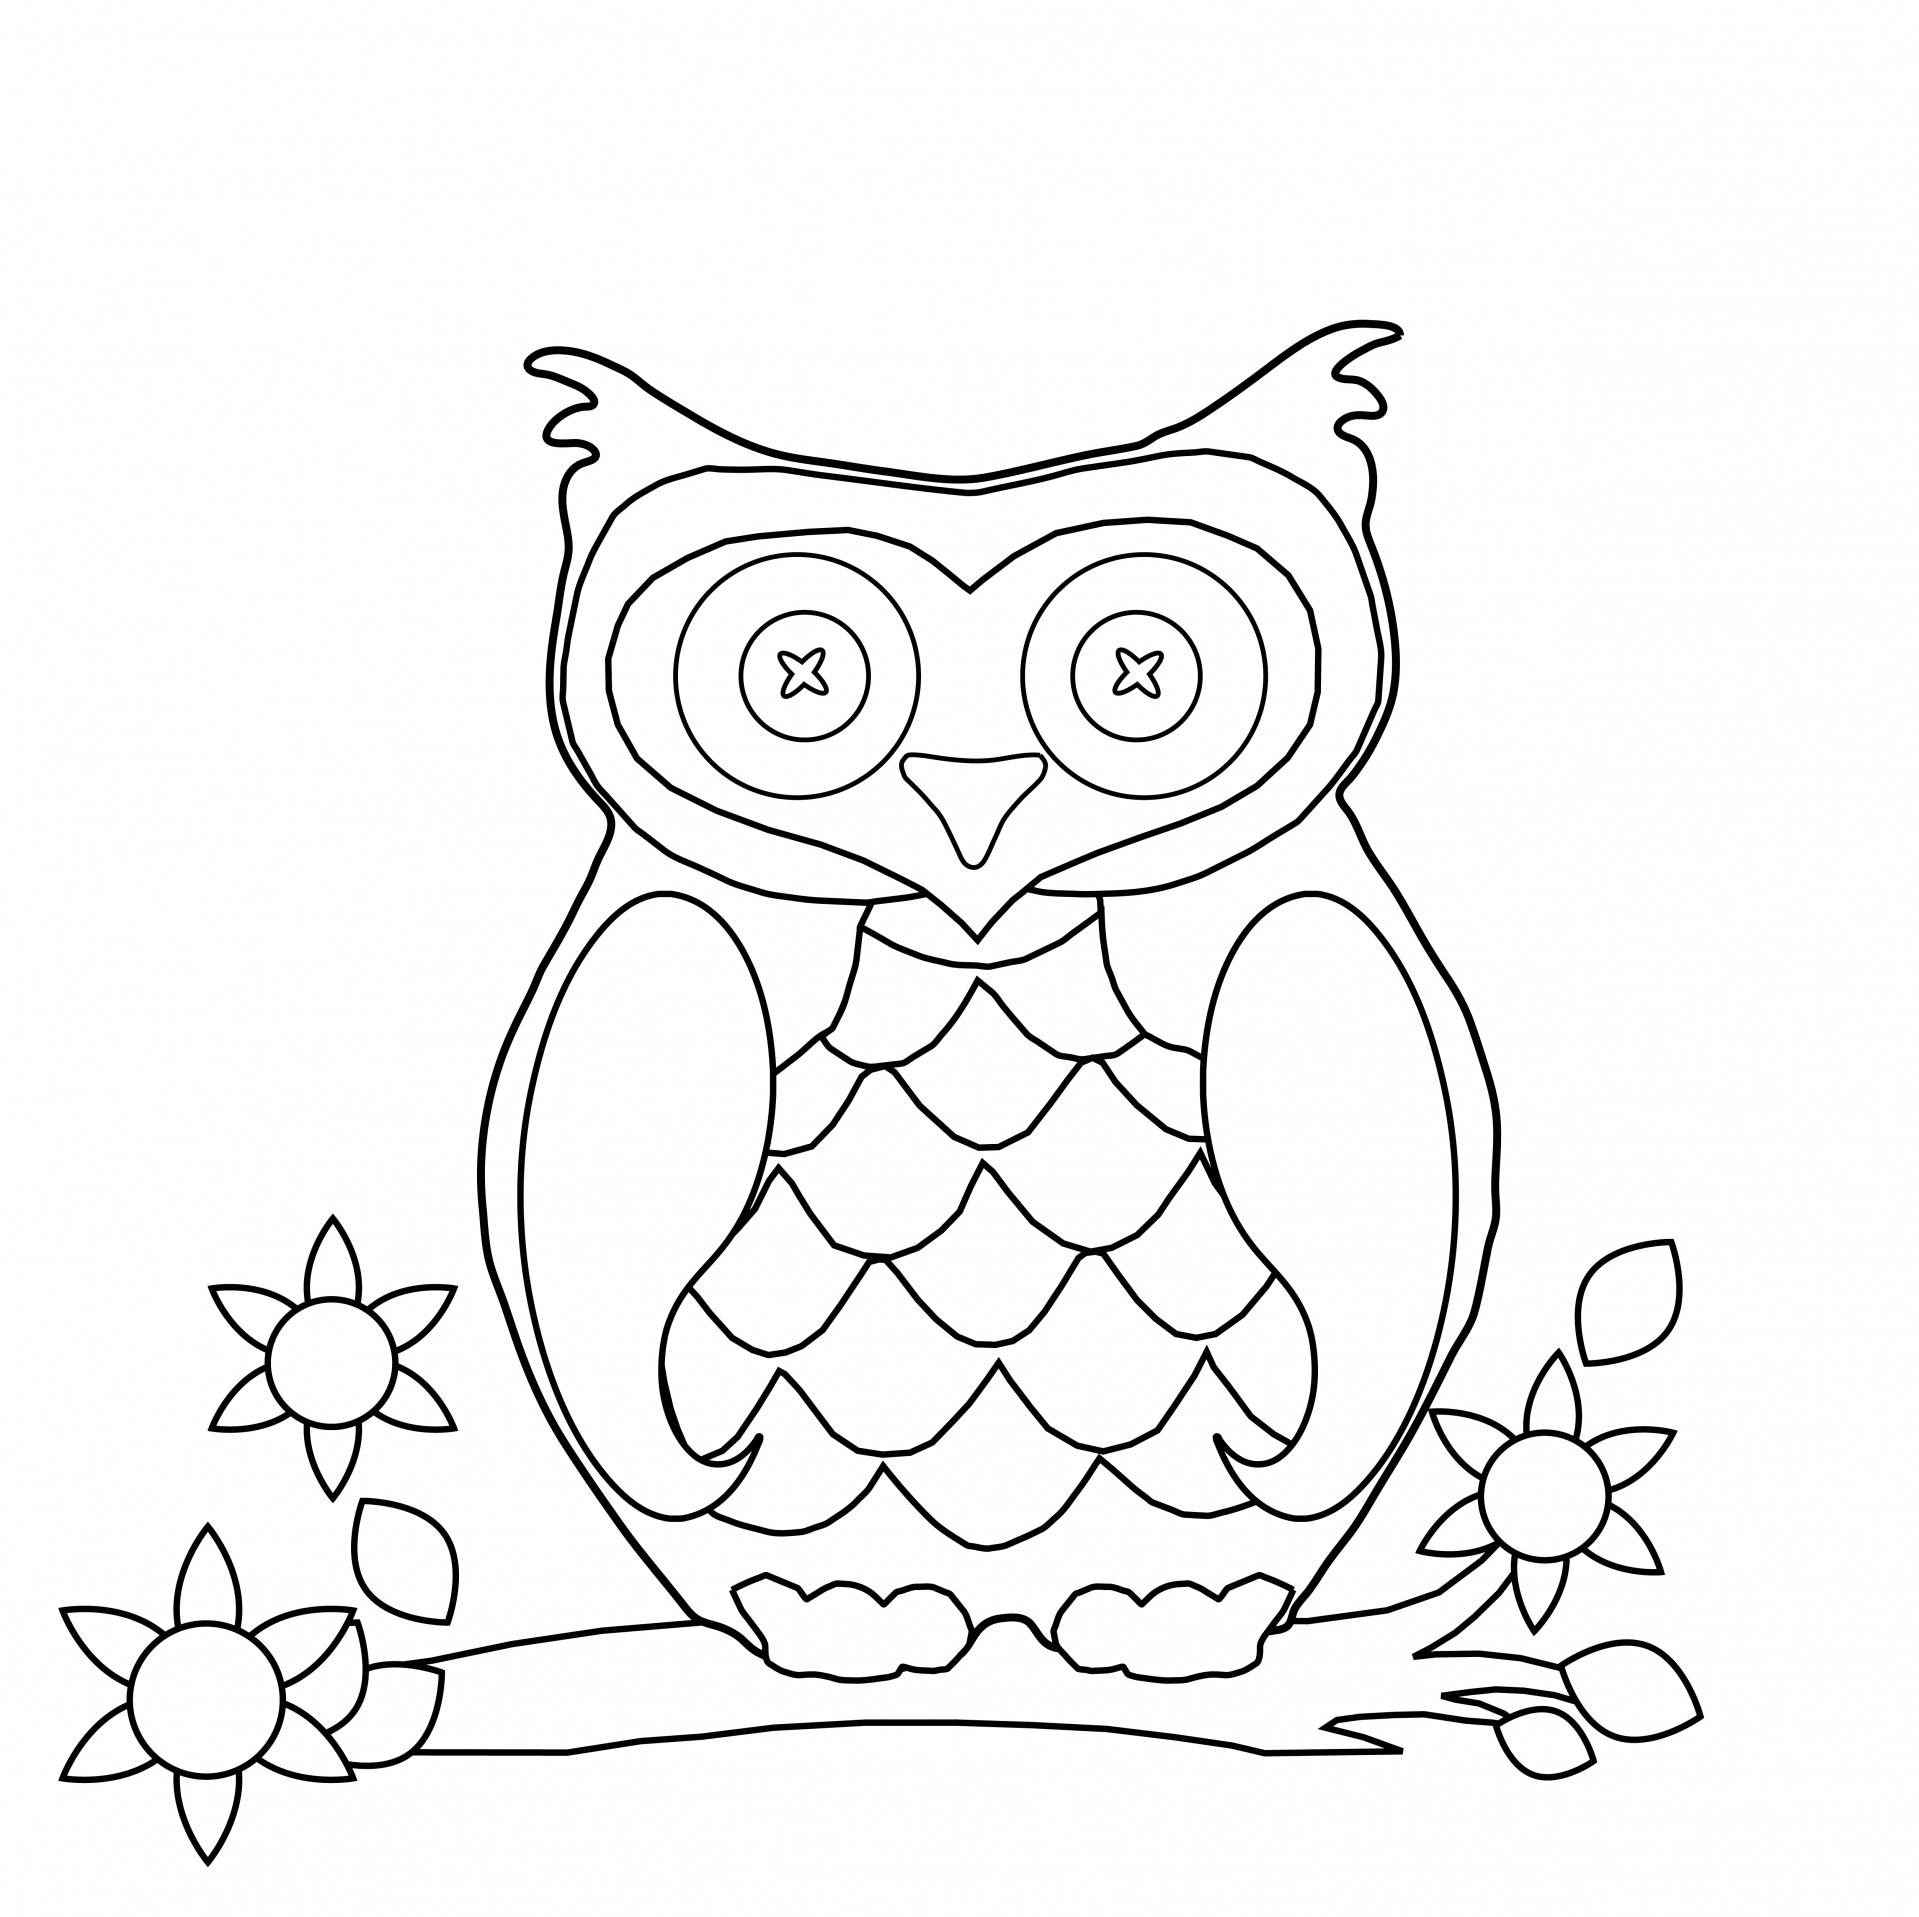 for coloring pictures free printable elsa coloring pages for kids best for coloring pictures